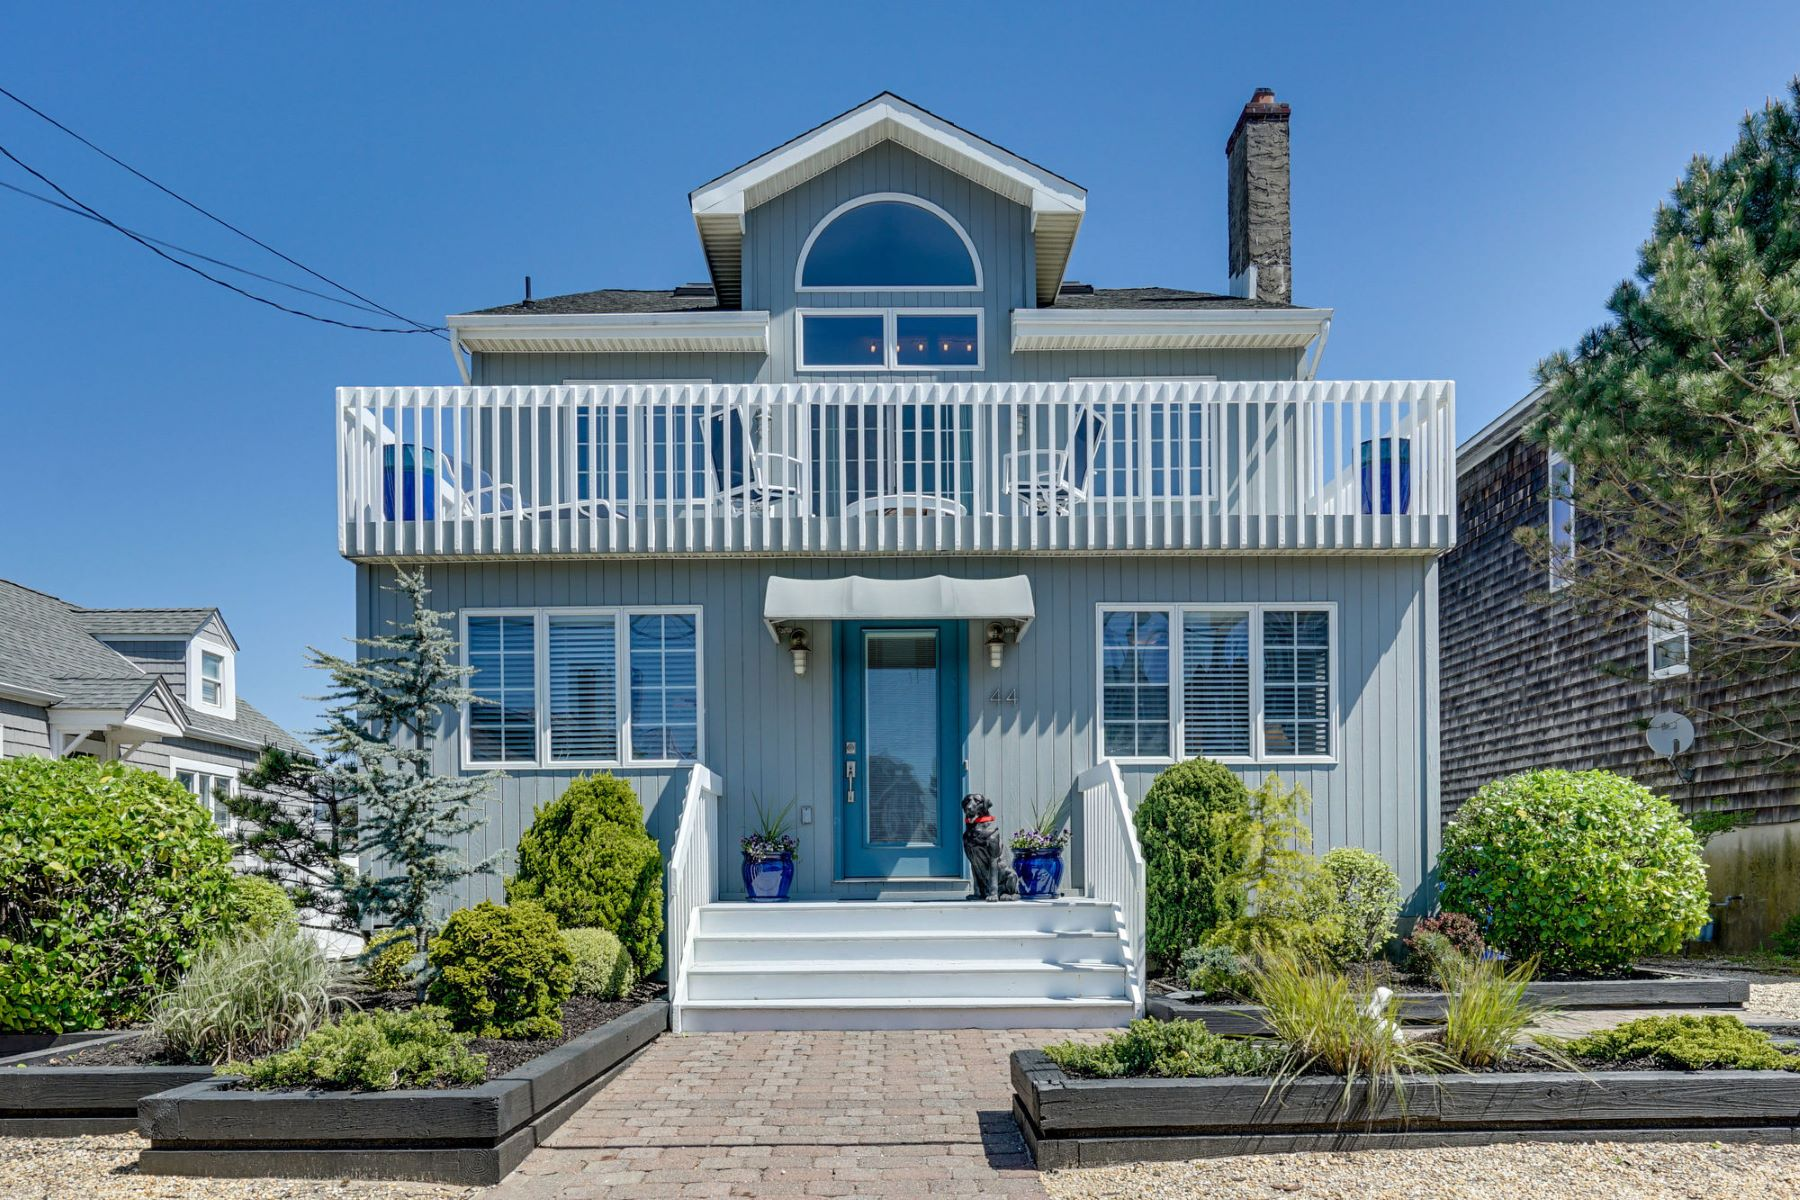 Single Family Homes for Sale at Beautiful Oceanblock Home 44 1st Avenue Normandy Beach, New Jersey 08739 United States